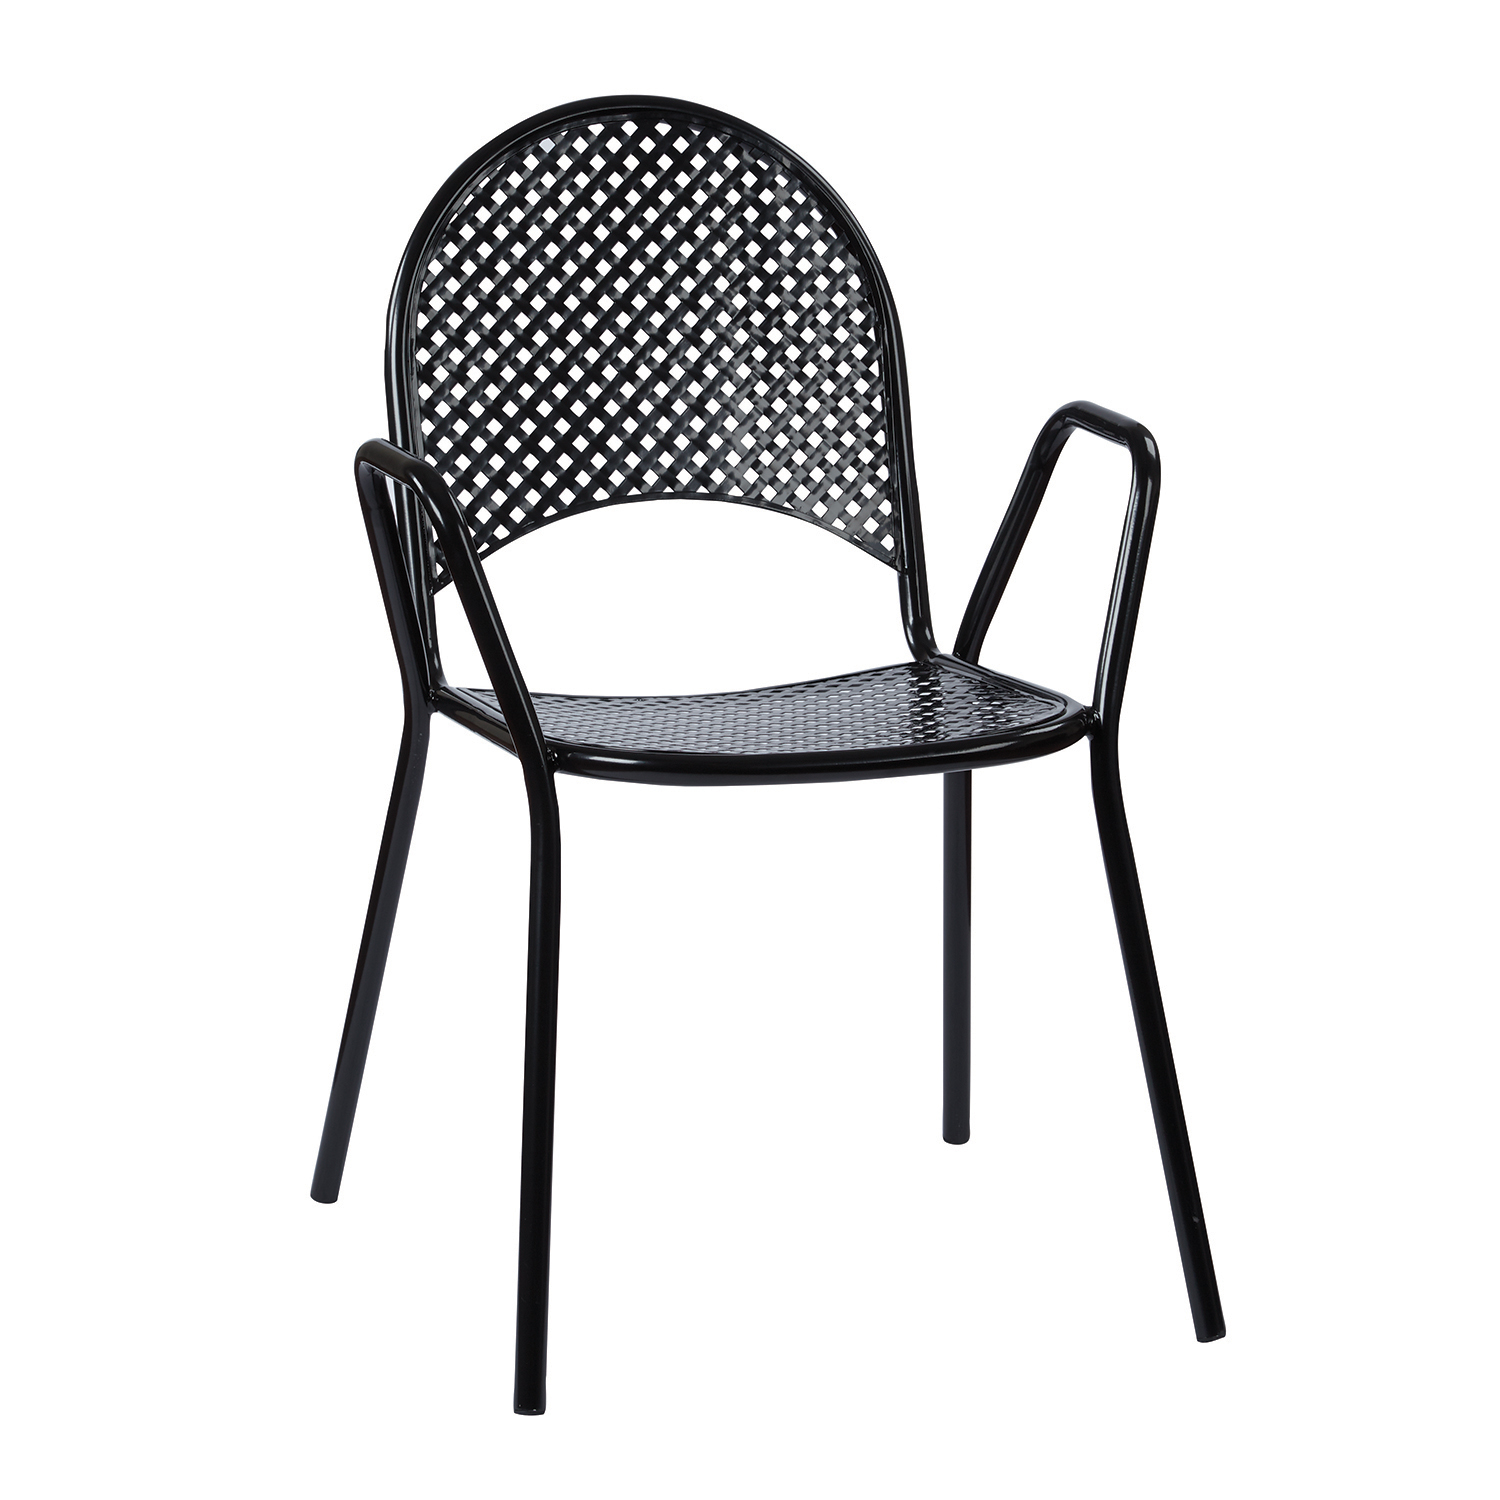 Black Steel Stacking Chairs Set of 2